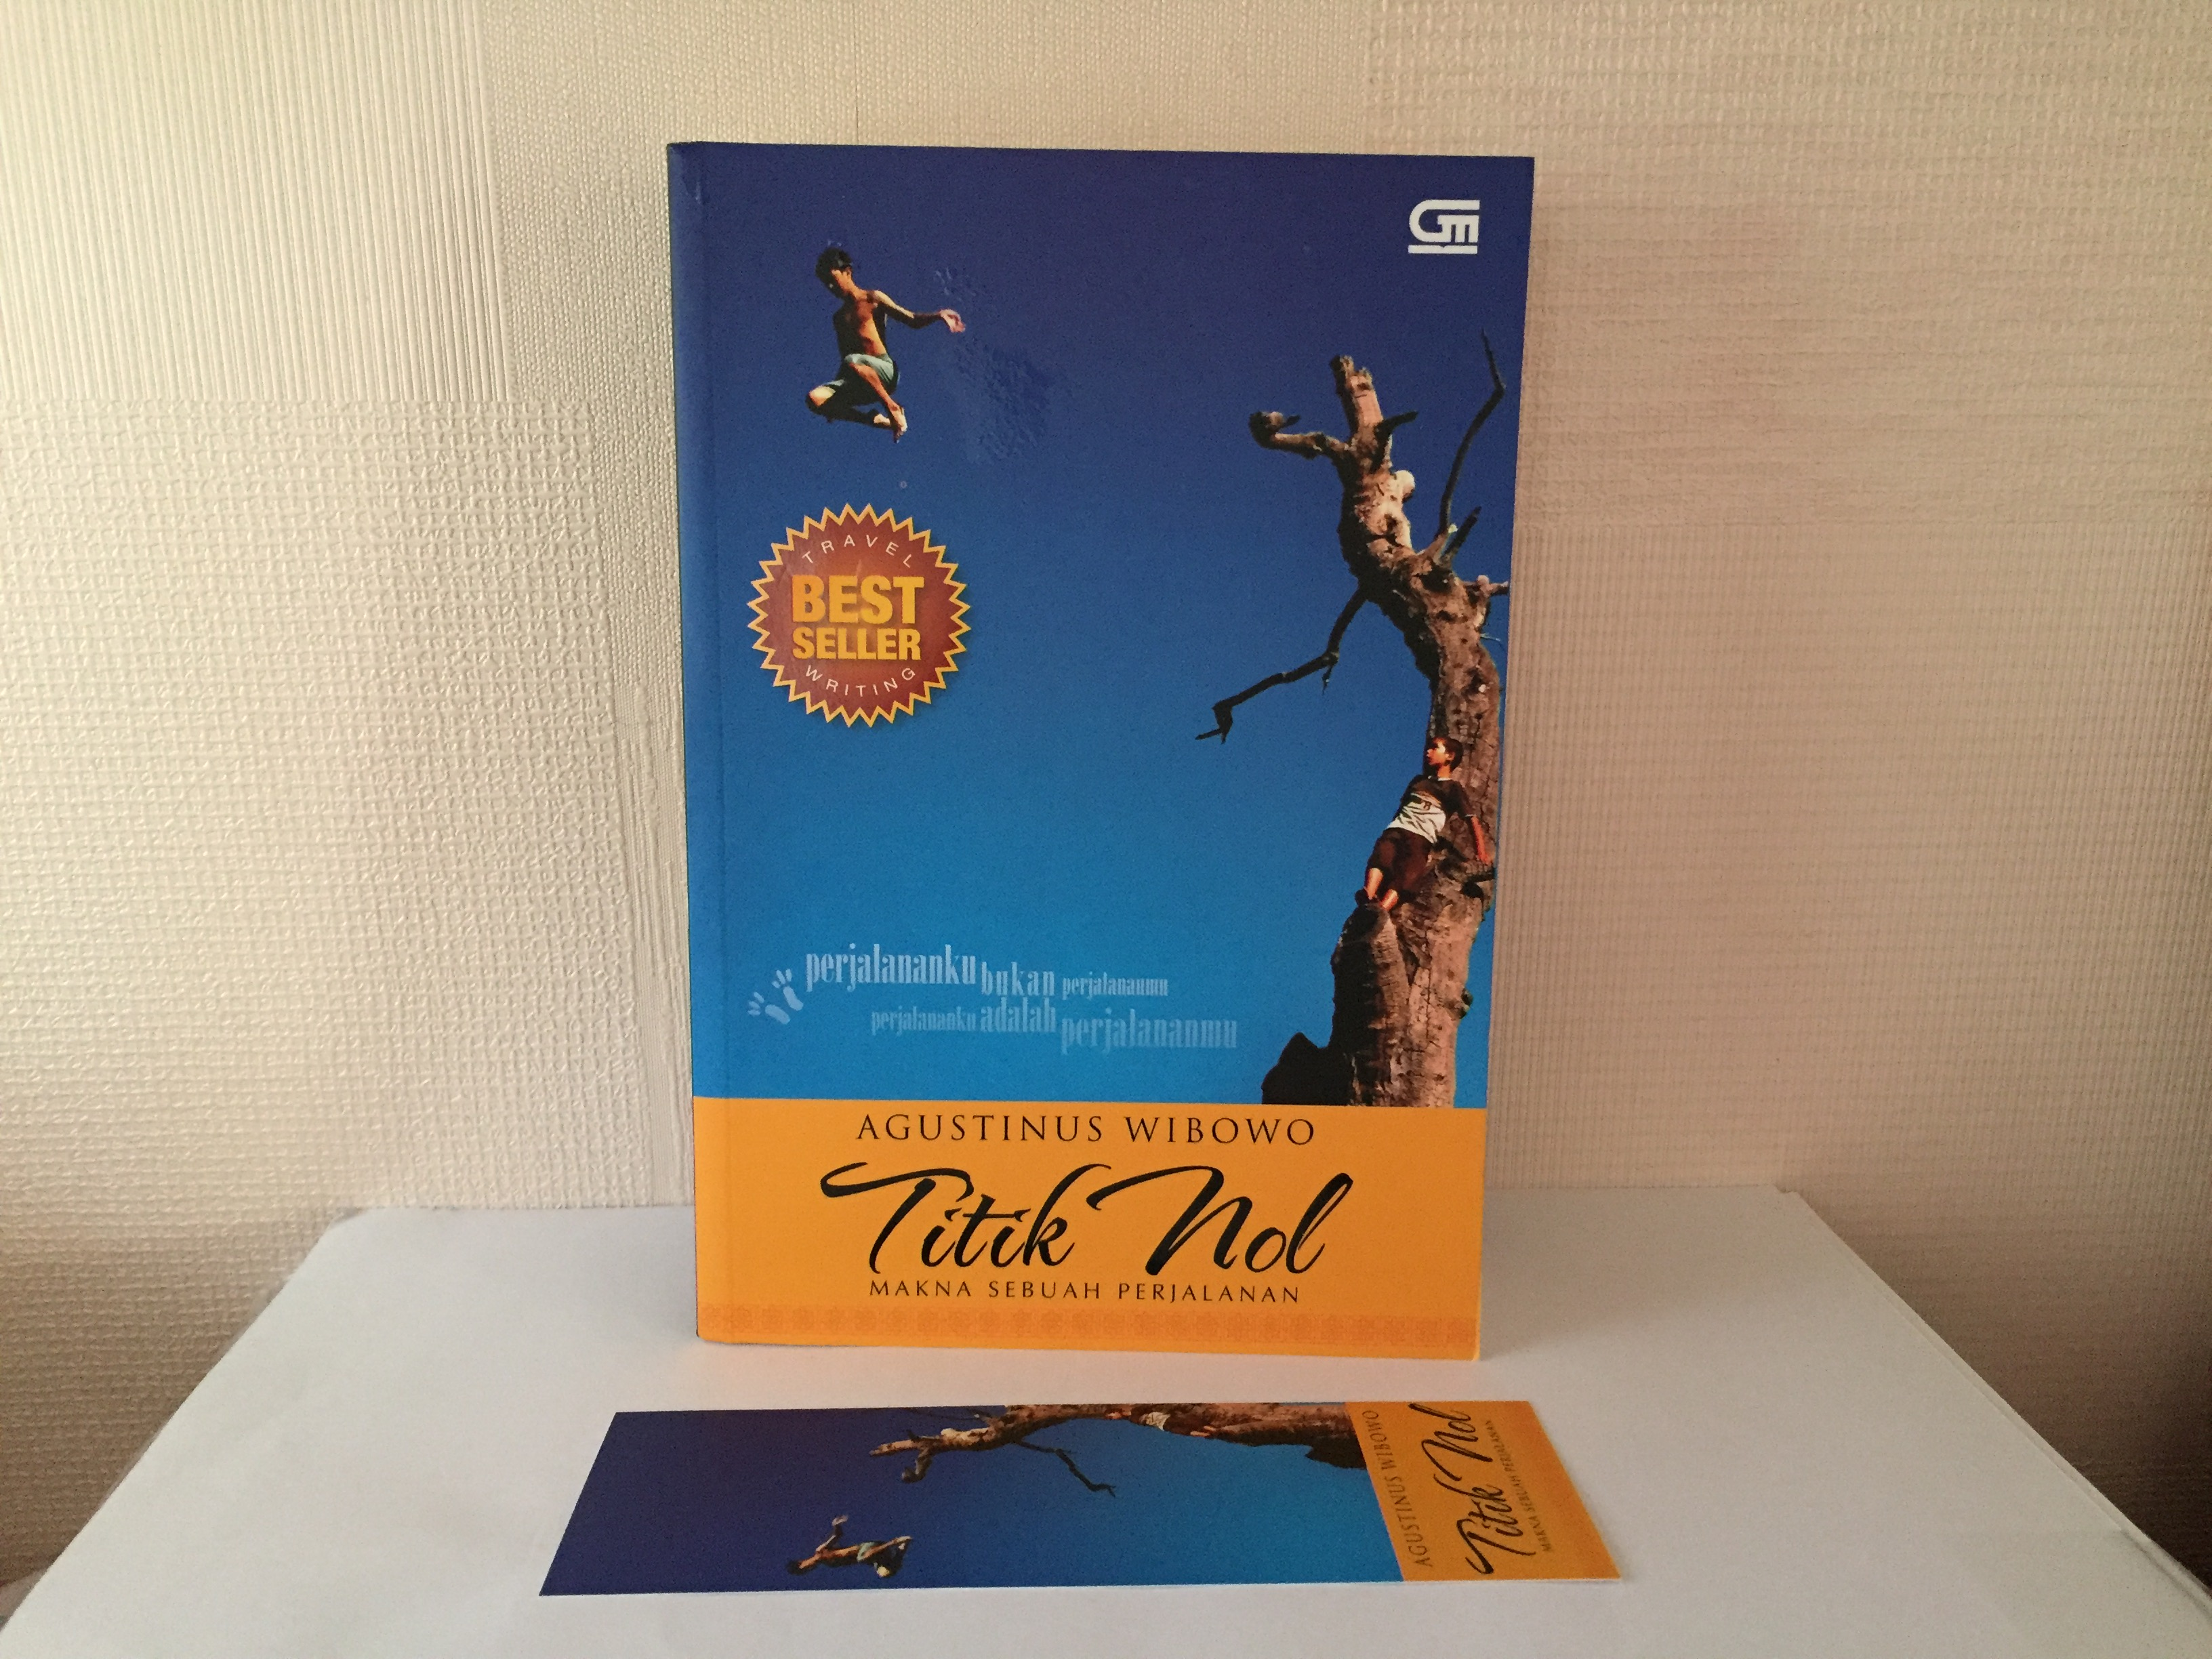 [Review Buku Travel Writing ] Titik Nol karya Agustinus Wibowo